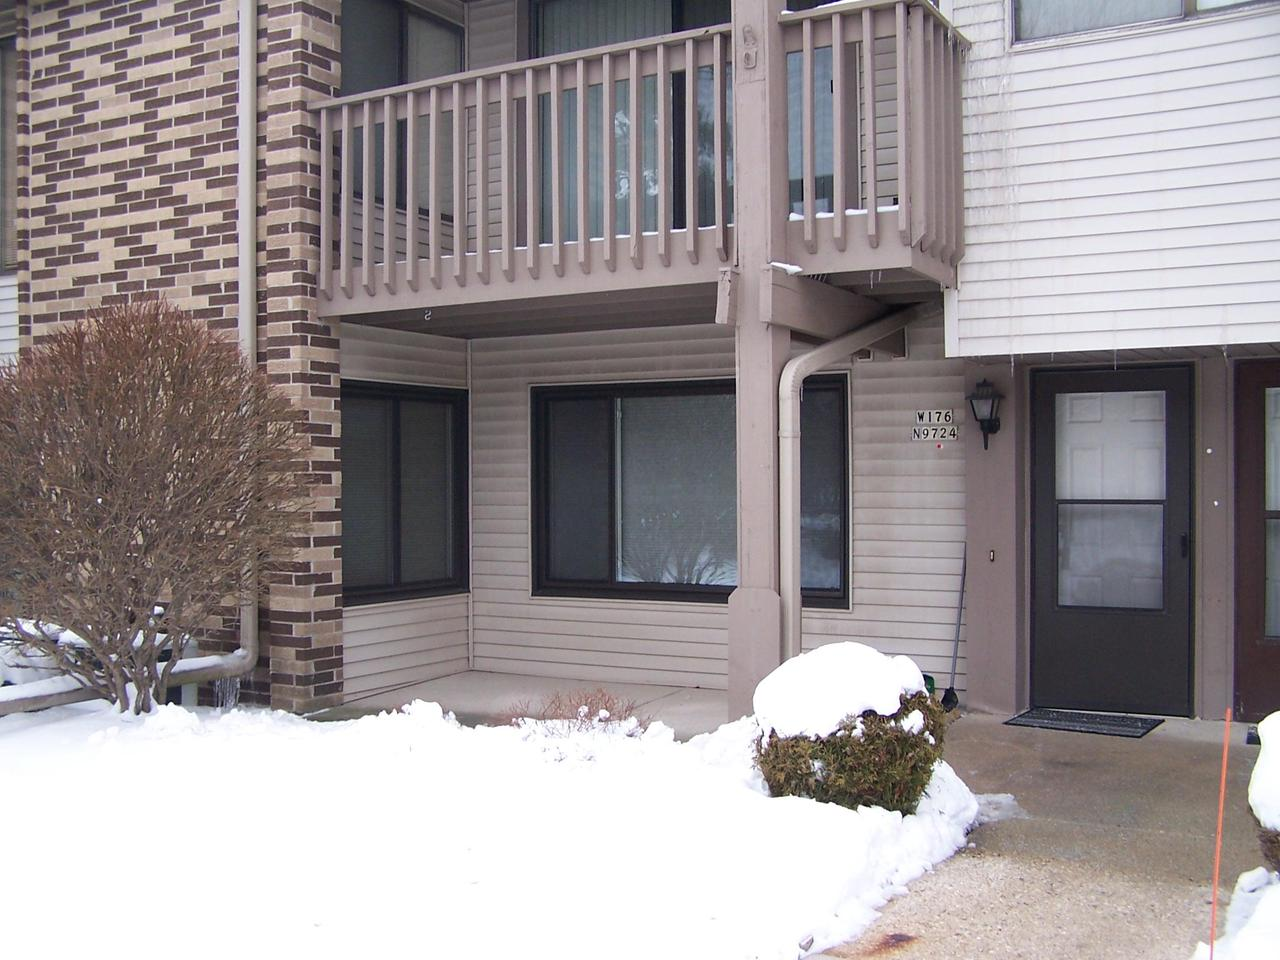 Great Condominium in Riversbend. First floor unit with private patio, garage, assigned parking space and private storage room.  Riversbend has 2 outdoor heated pools, tennis courts, pickle ball court, walking paths and much more. Beautiful clubhouse with full kitchen, bar, library and seat for 100 people for your family get togethers. NO PETS ALLOWED.